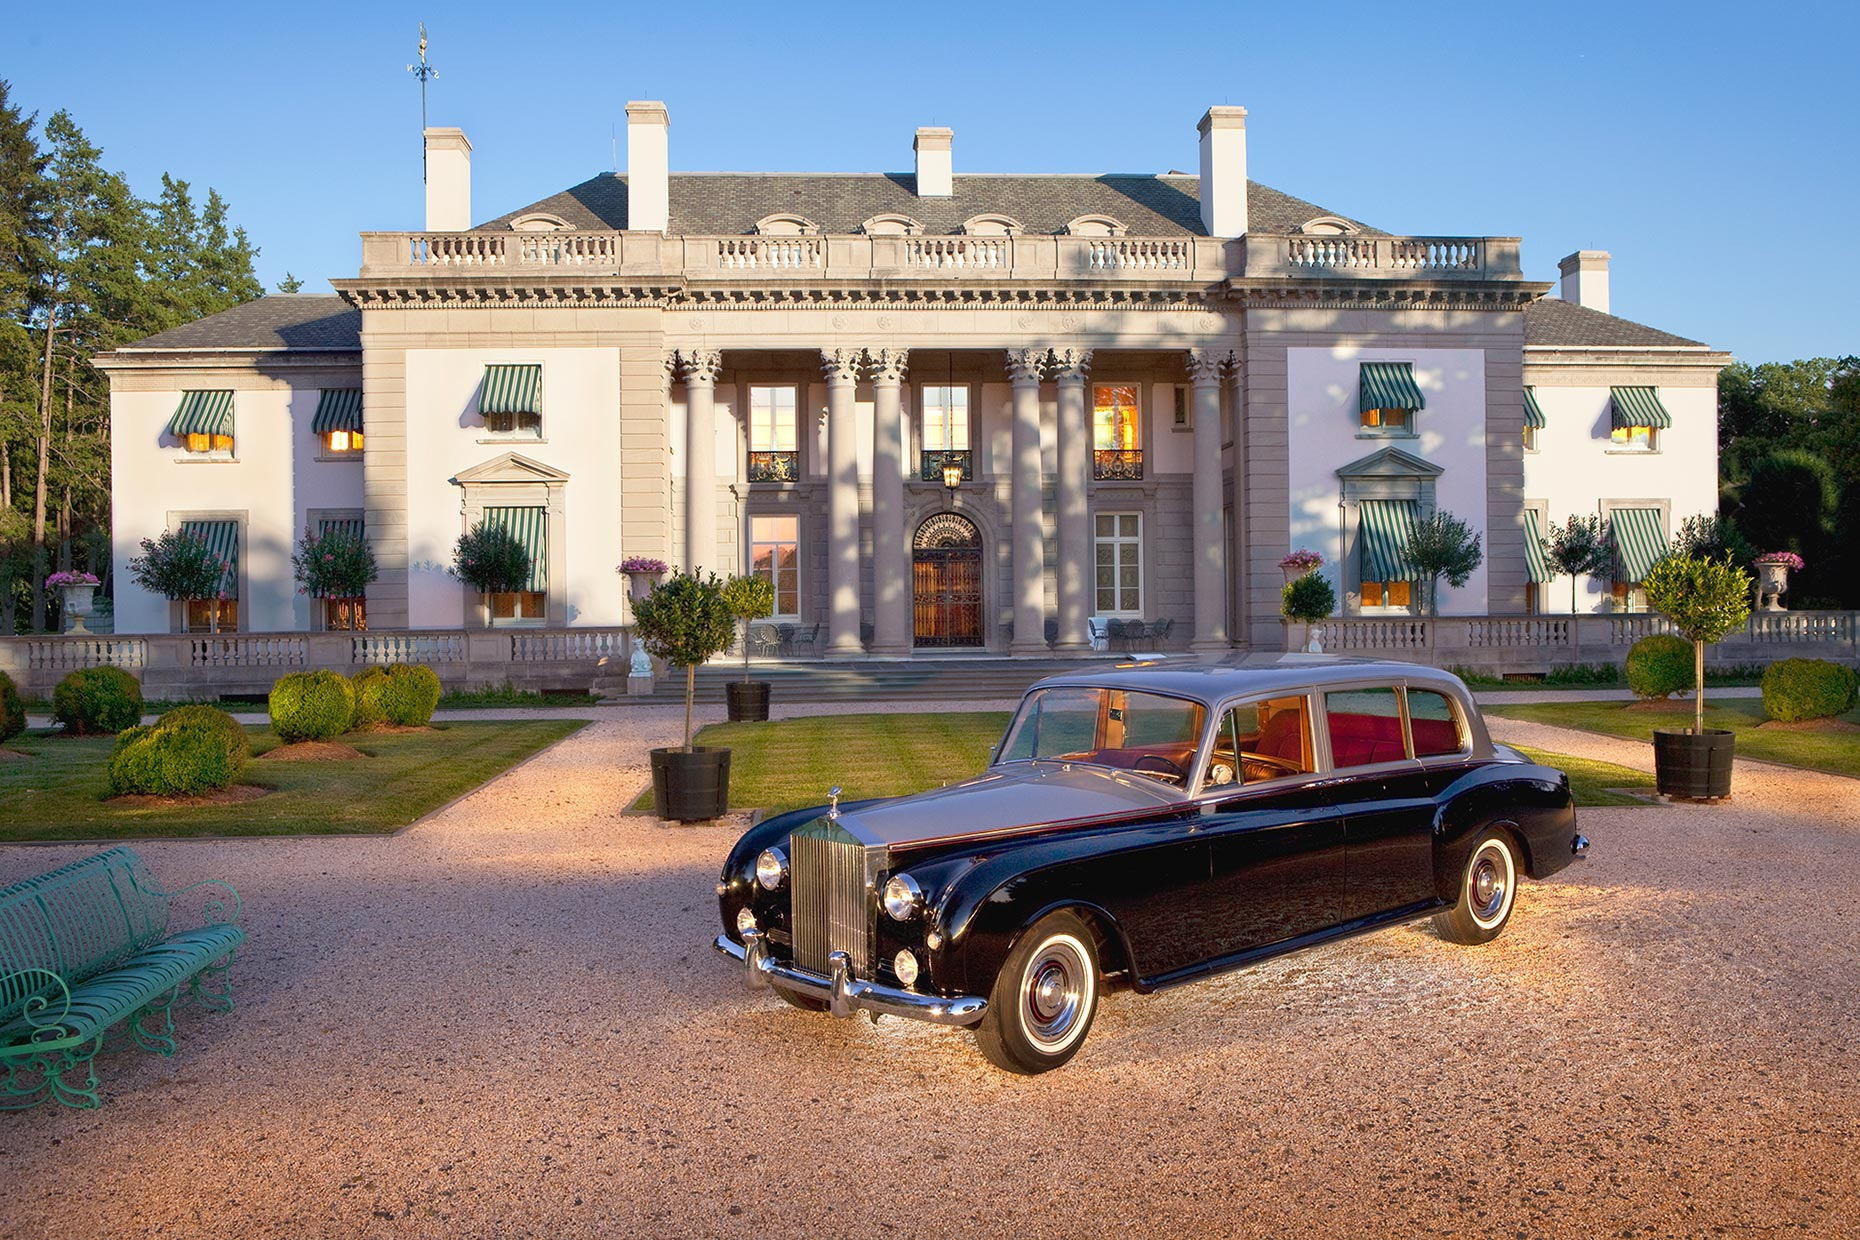 Nemours Mansion and Rolls Royce